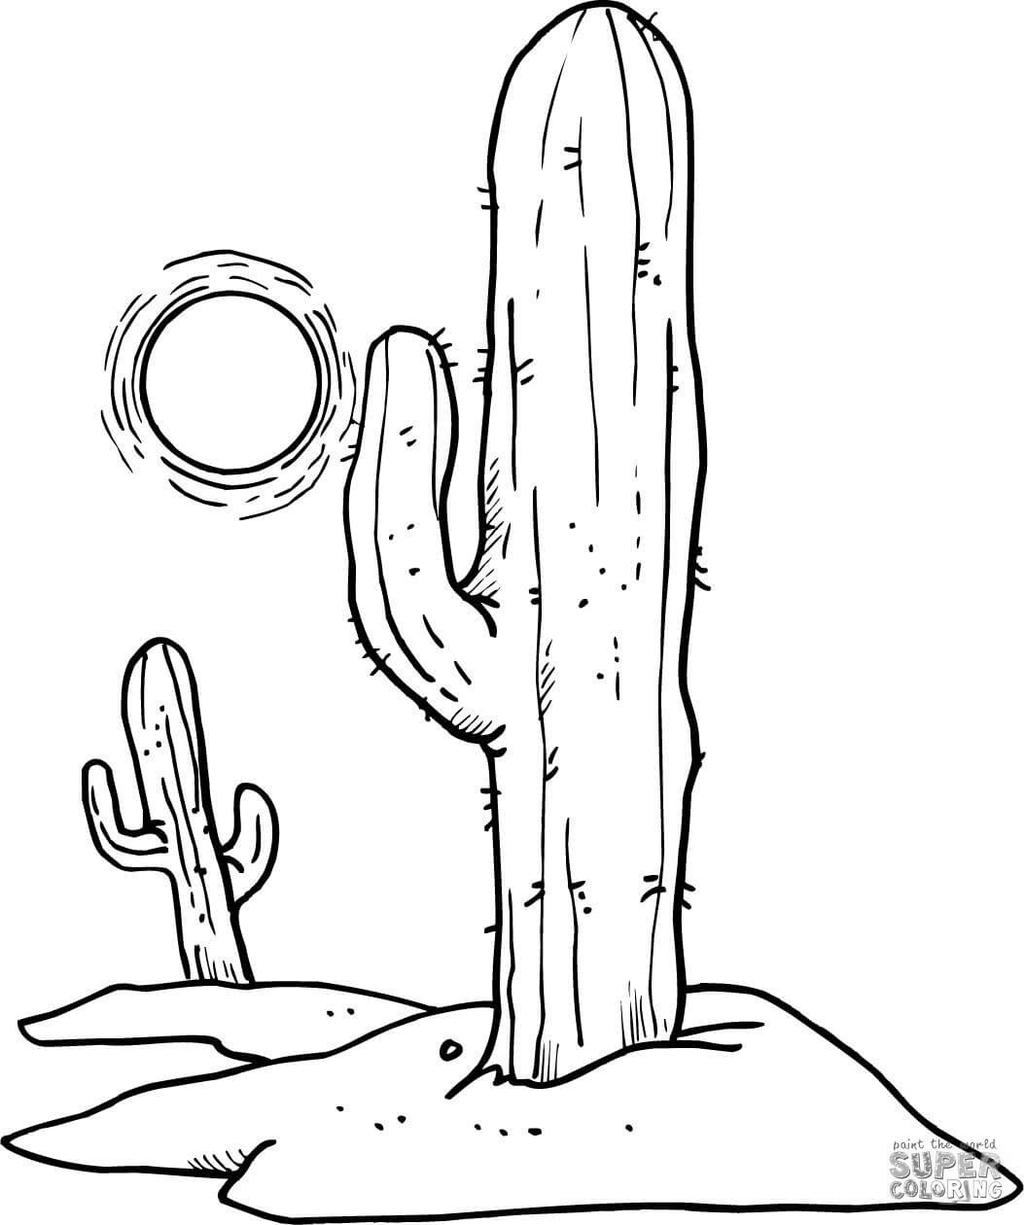 Sonoran Desert Food Chain Coloring Pages Lustermahtab Line